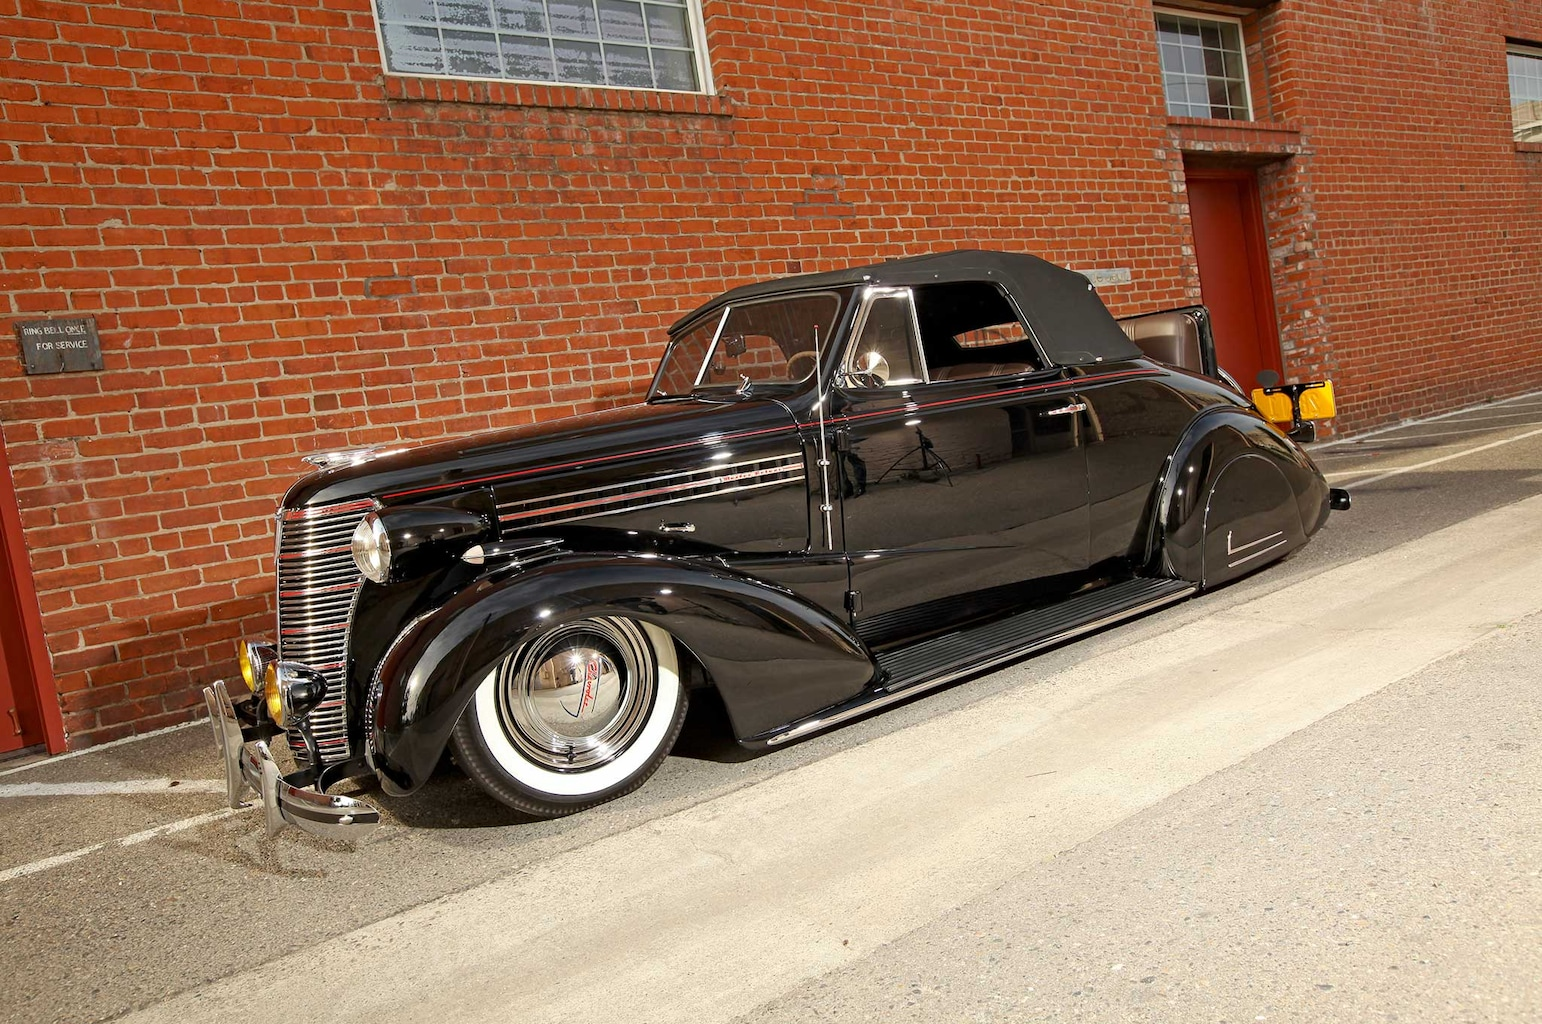 014 1938 chevrolet cabriolet driver side view